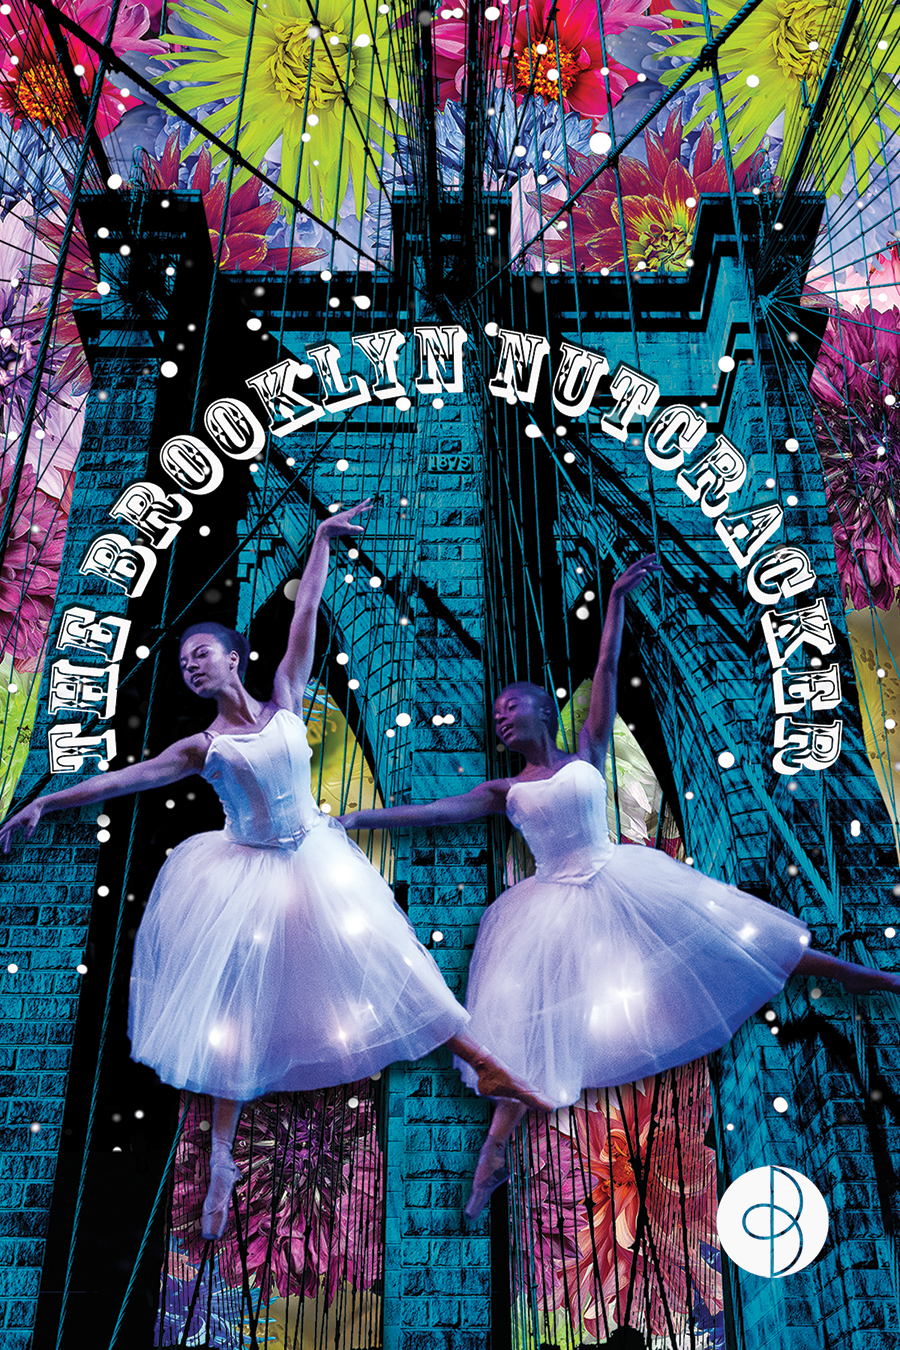 Two dancers in white tutus pose against a colorful backdrop. The Brooklyn Nutcracker is printed in silver.